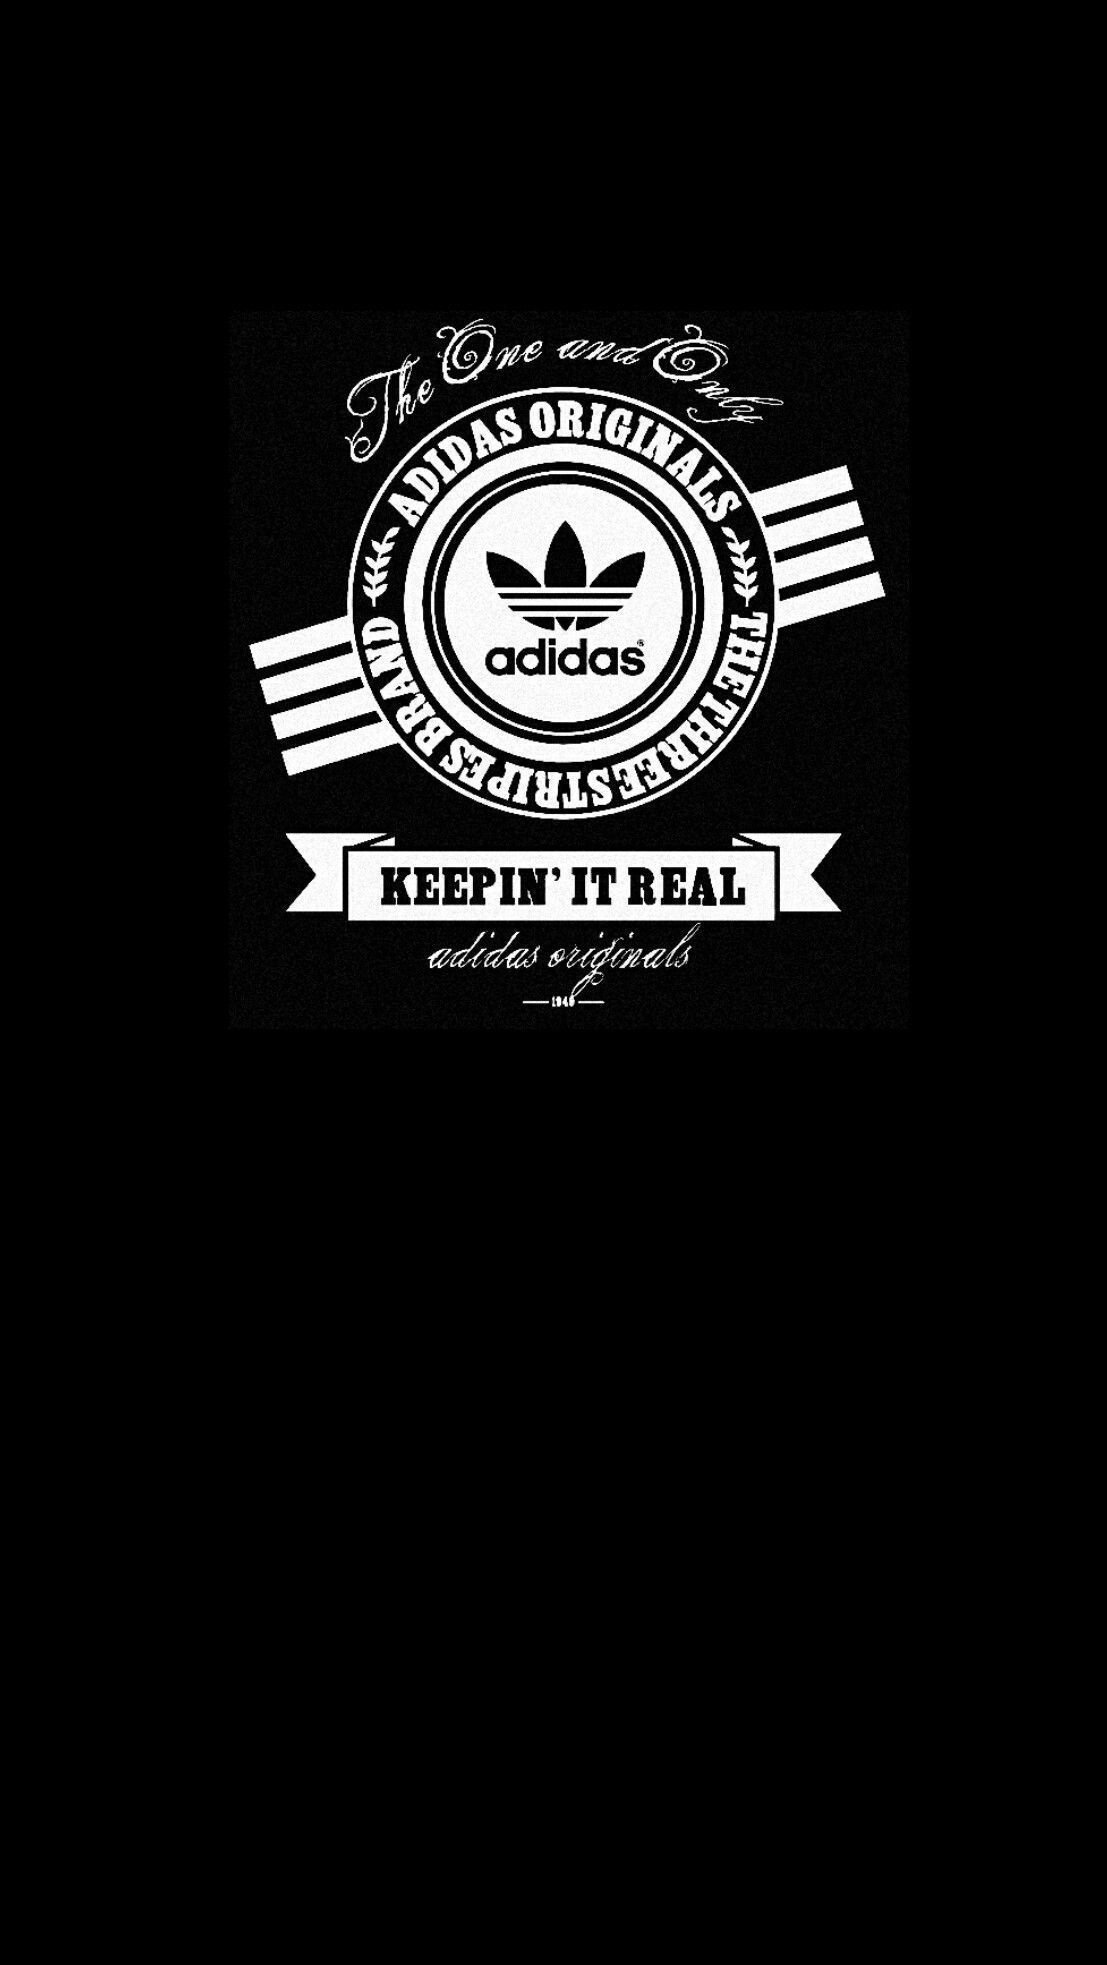 Adidas 4k Wallpapers Top Free Adidas 4k Backgrounds